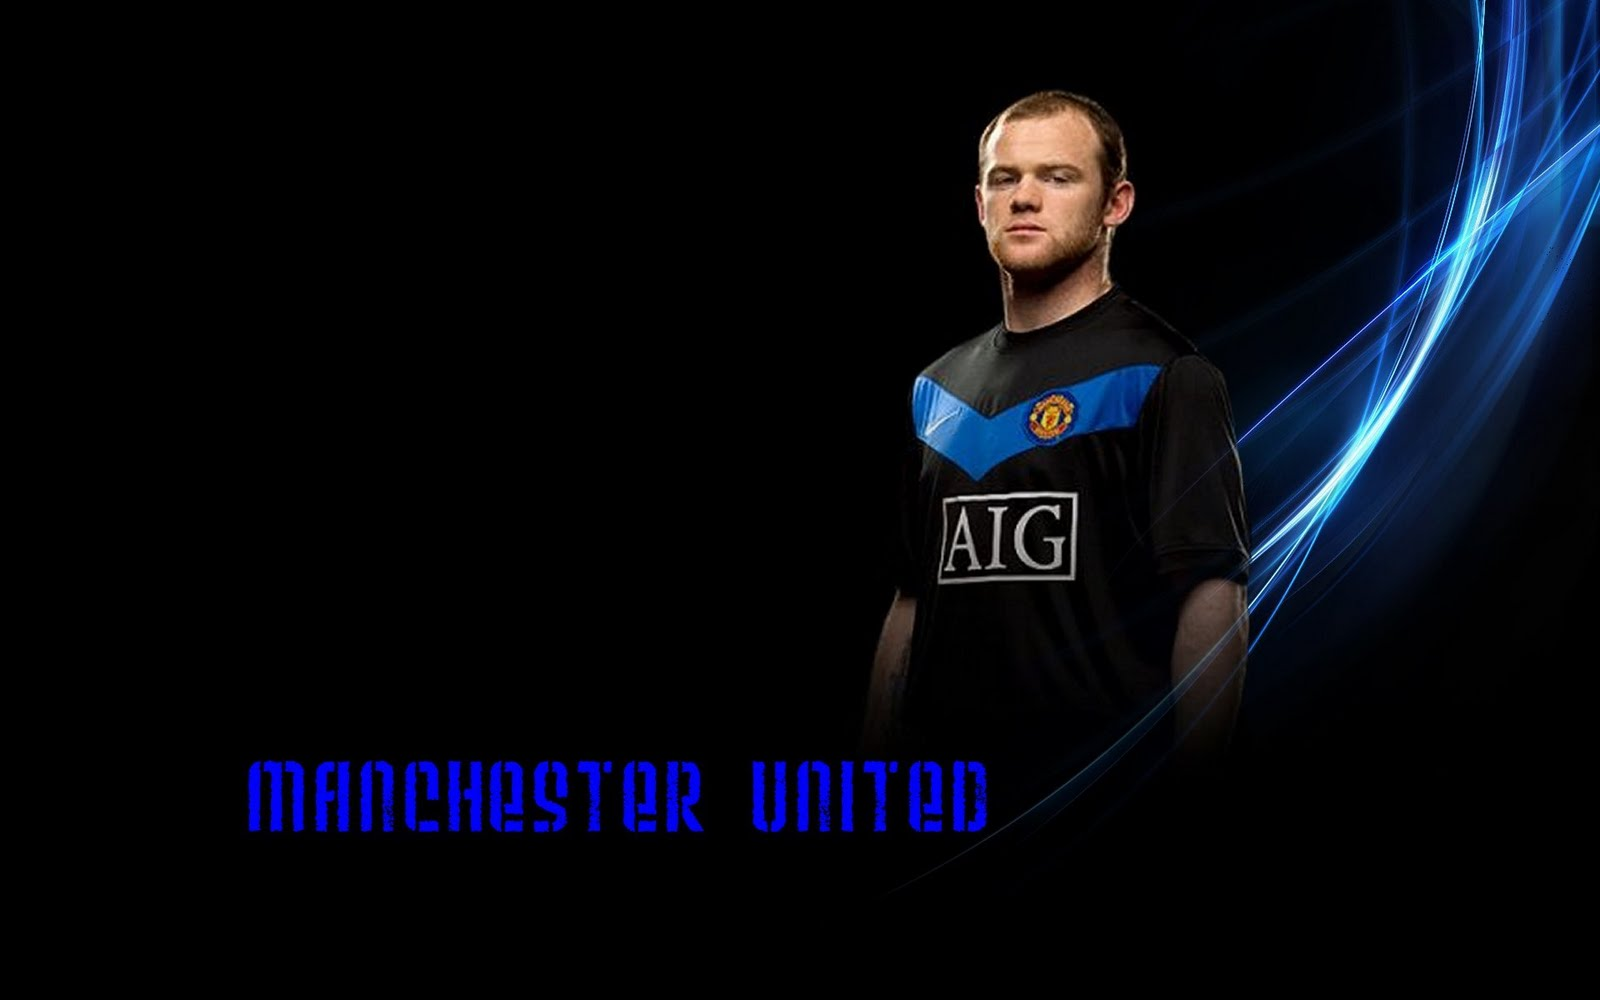 All Wallpapers: Wayne Rooney hd Wallpapers 2013